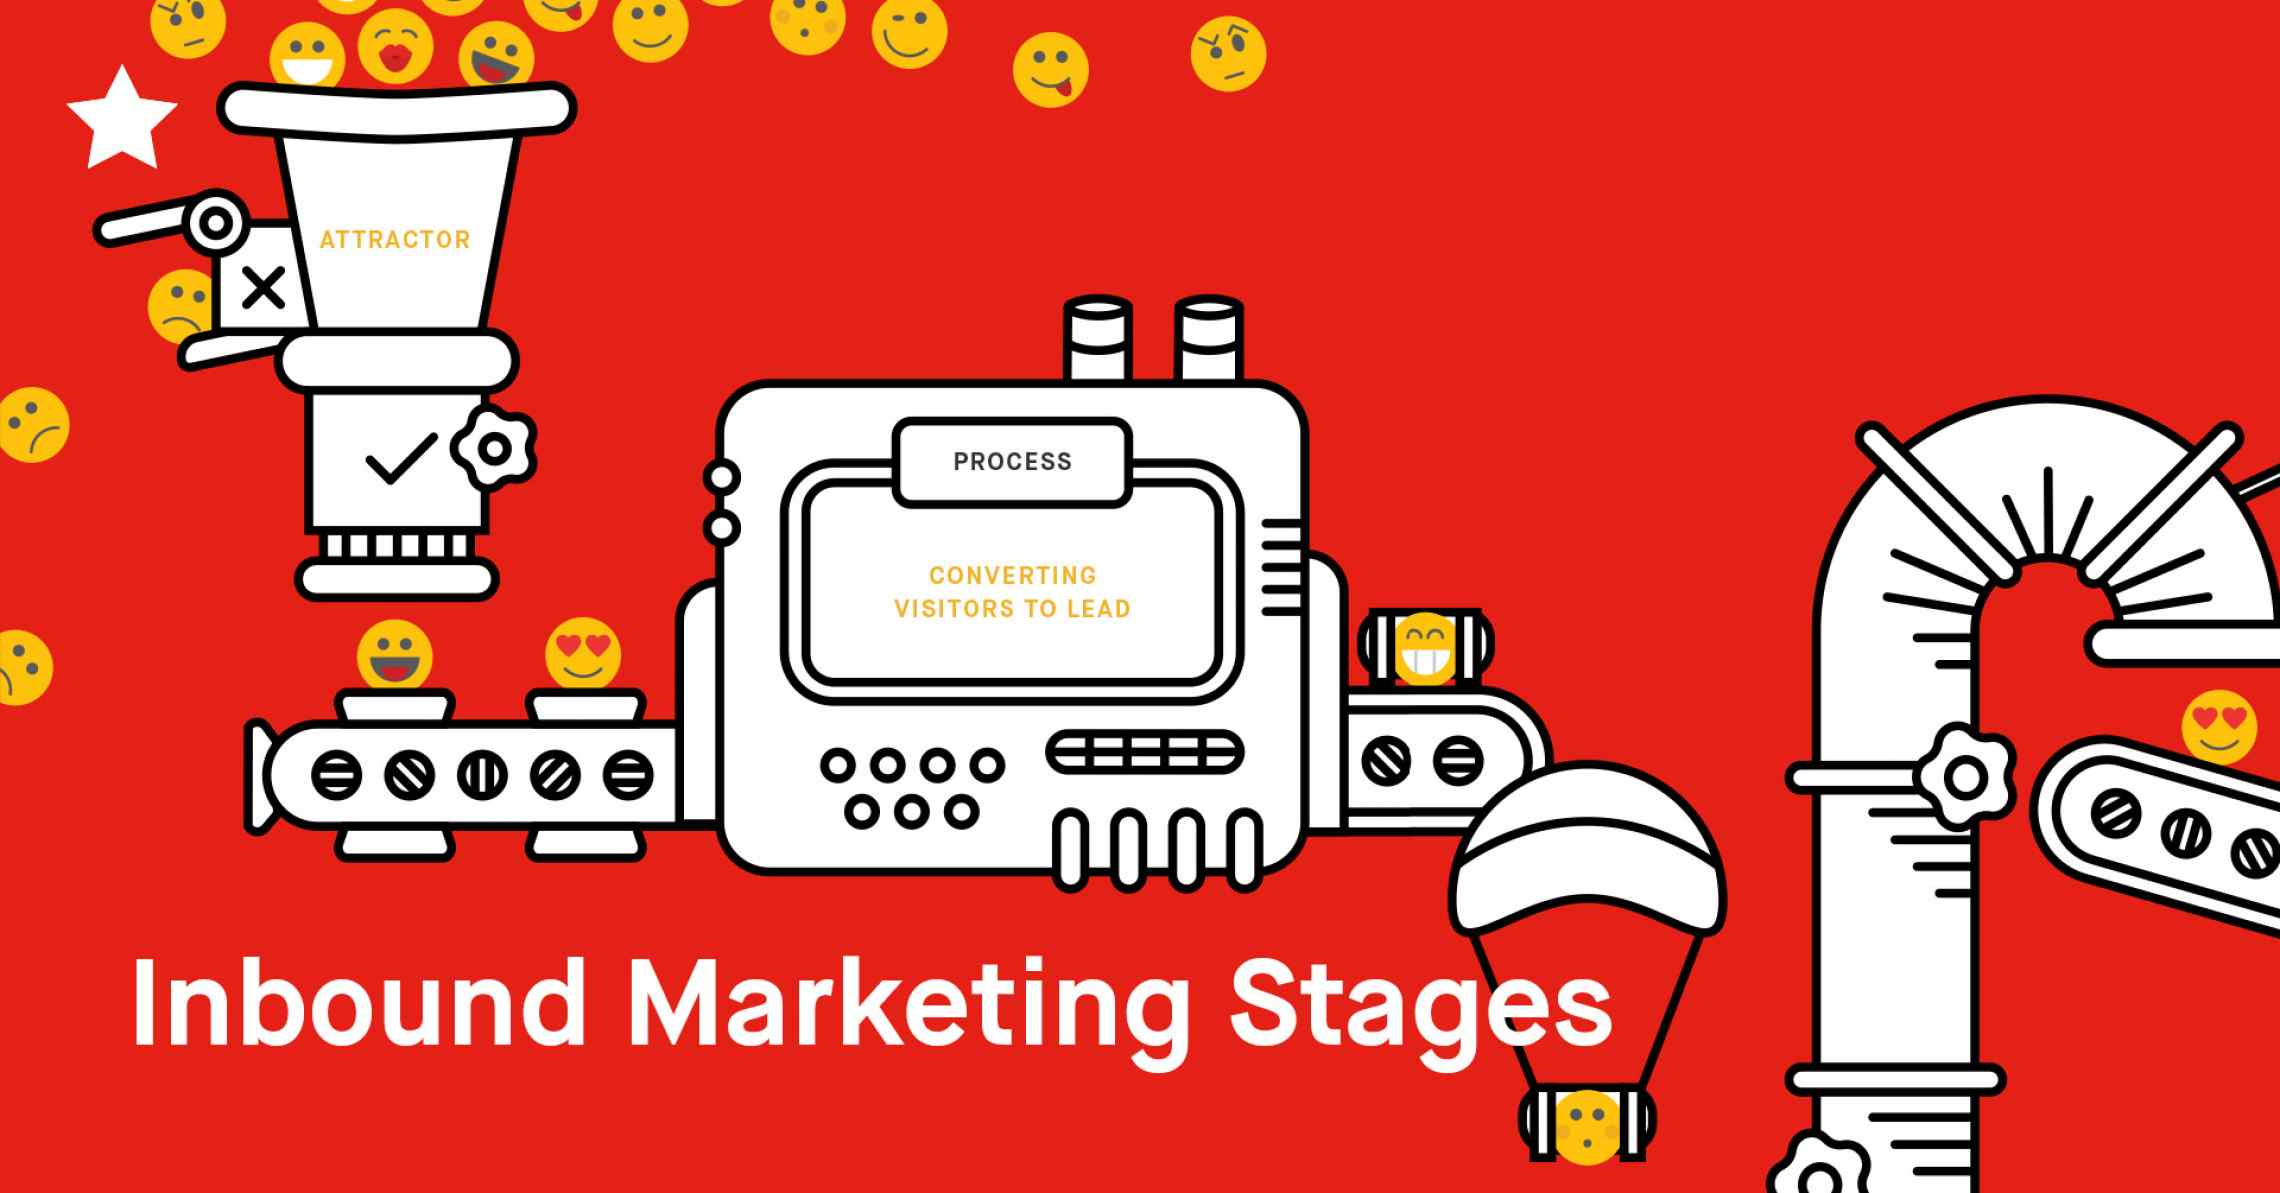 The Four Stages of Inbound Marketing